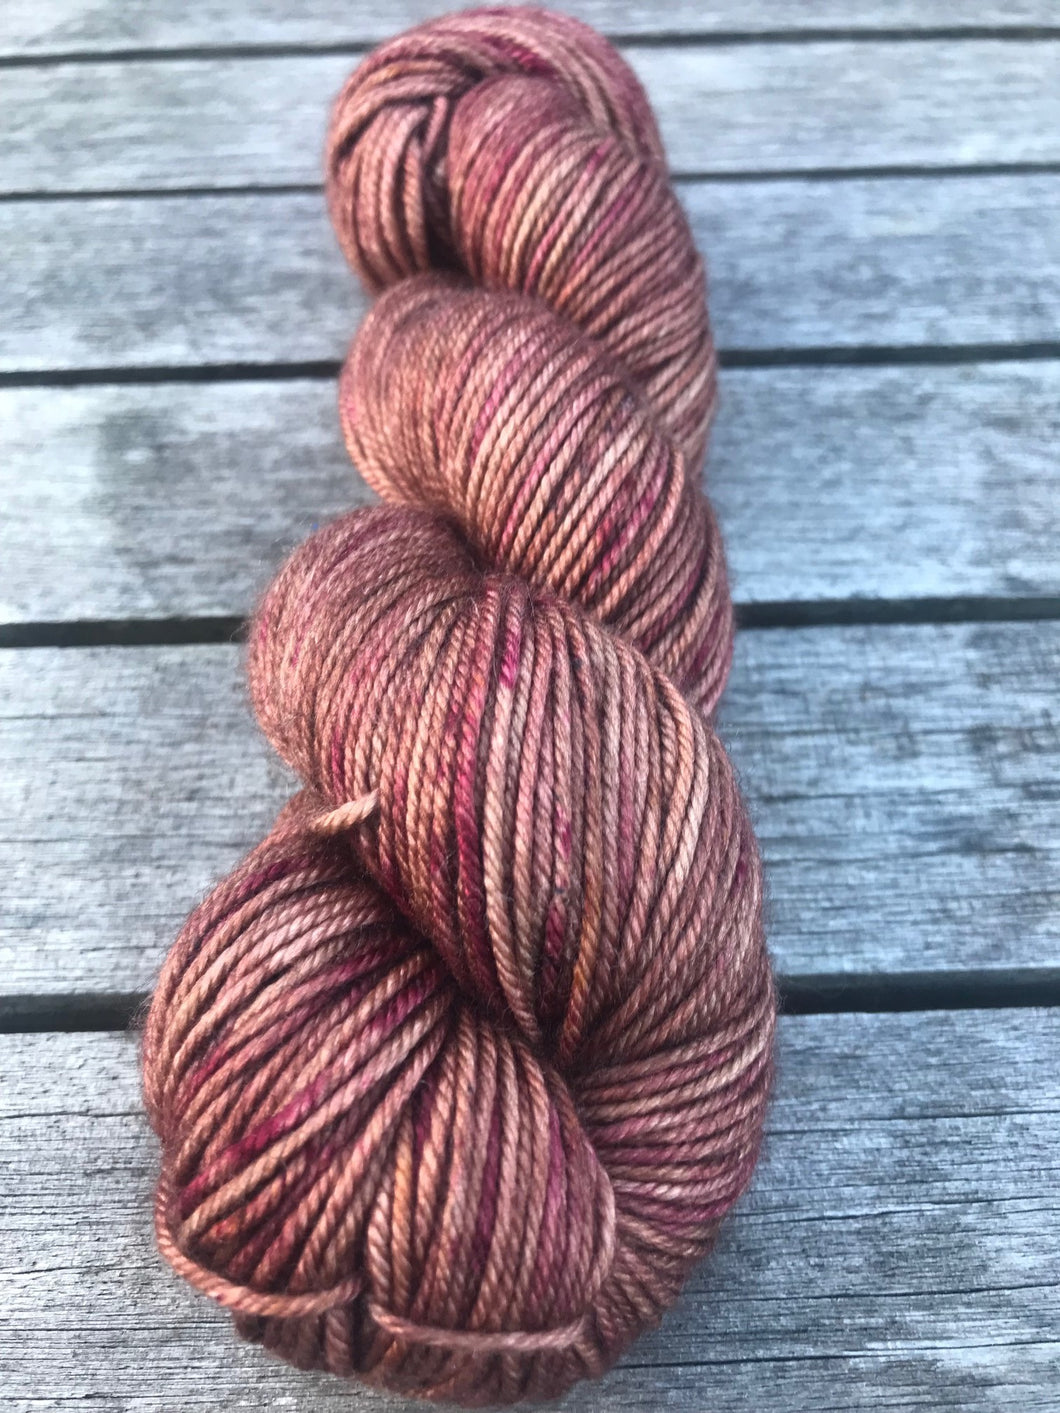 8ply Silk/Merino 'April'